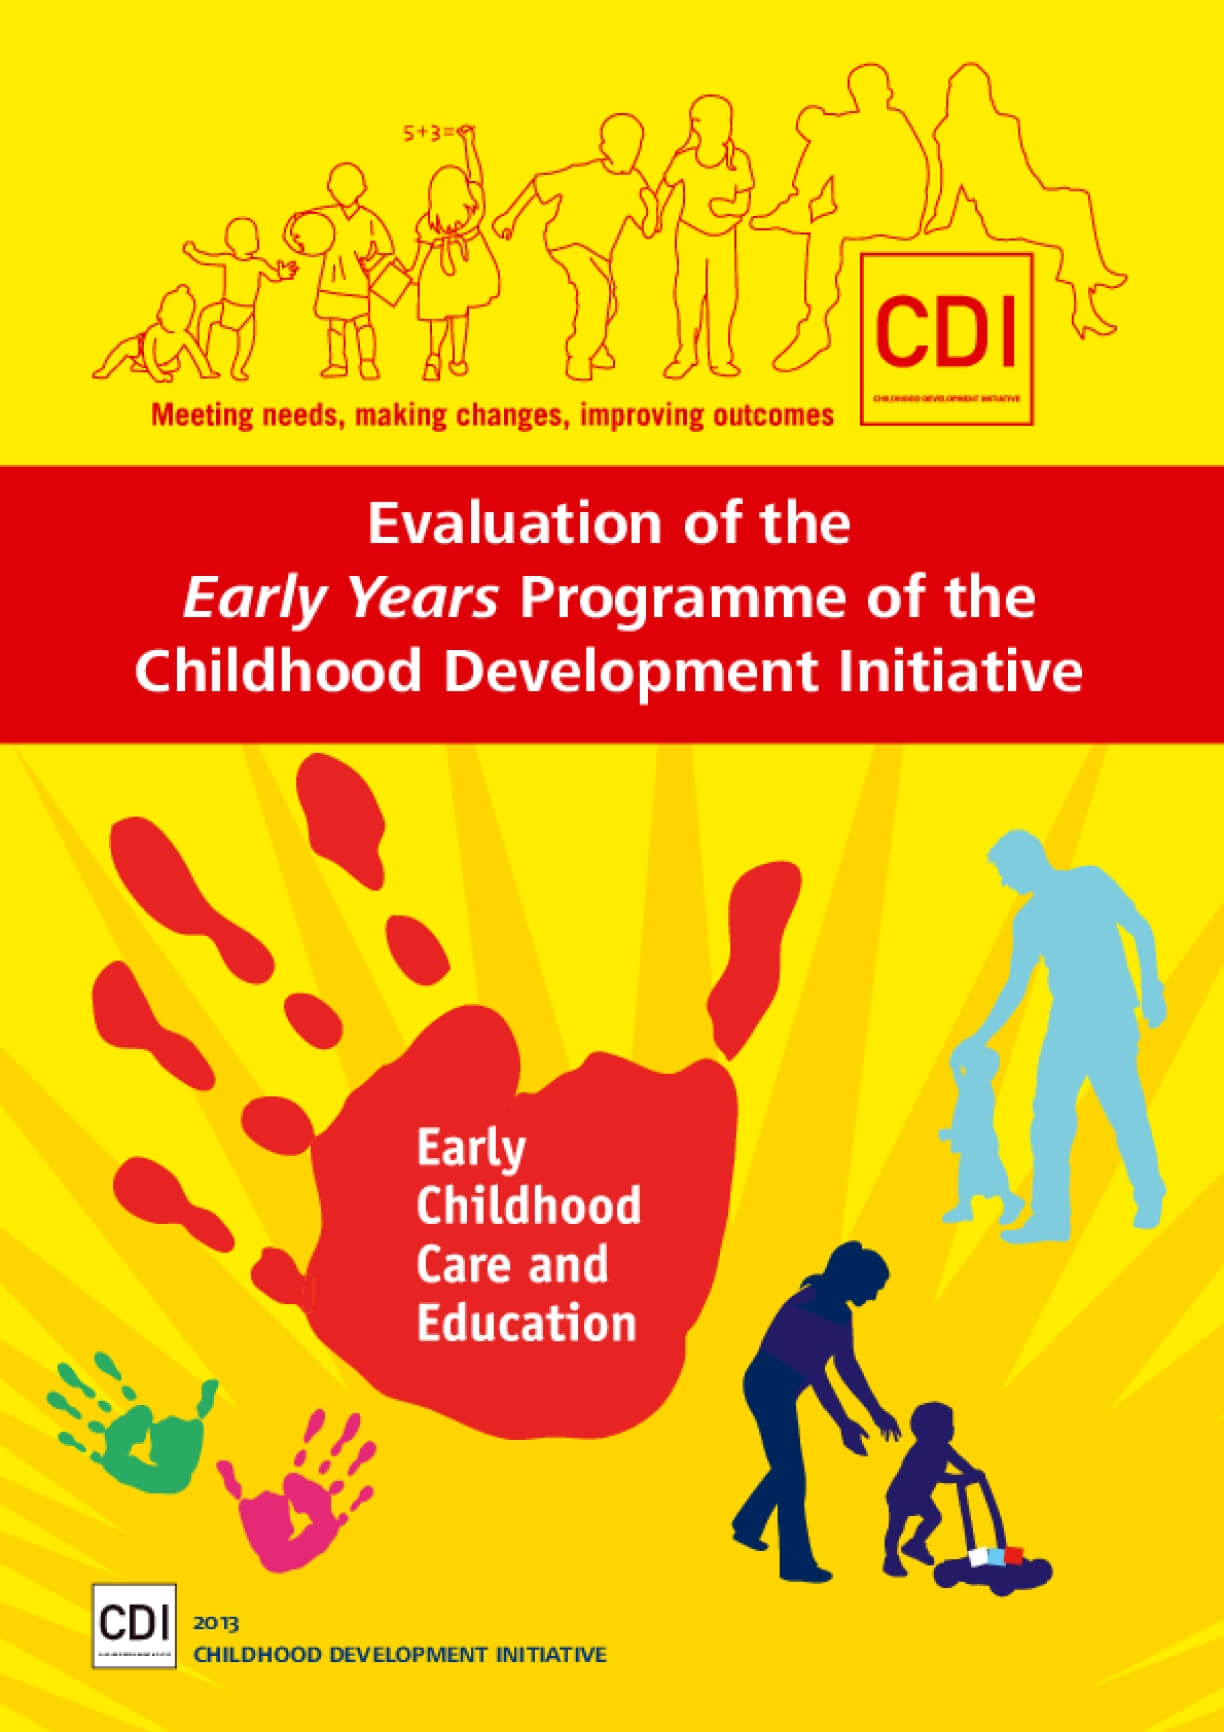 Evaluation of the Childhood Development Initiative's Early Years Programme